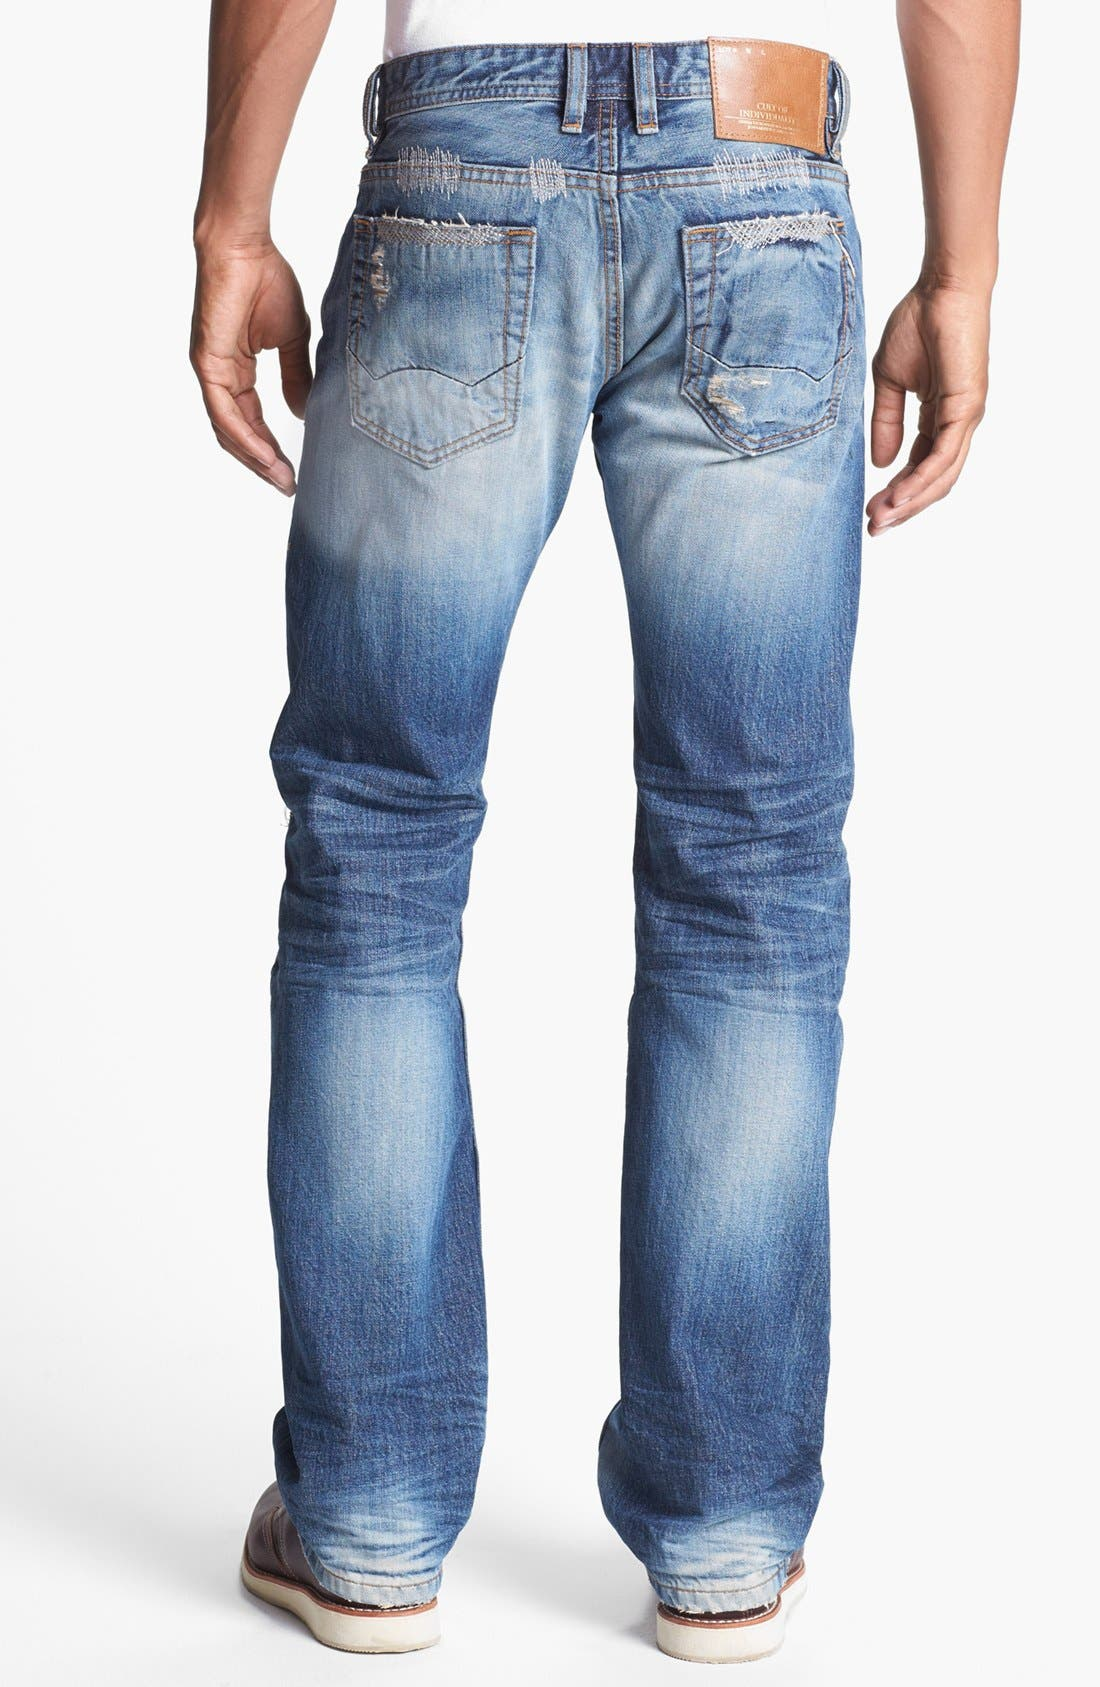 Alternate Image 1 Selected - Cult of Individuality 'Hagen' Relaxed Fit Selvedge Jeans (Vertigo)